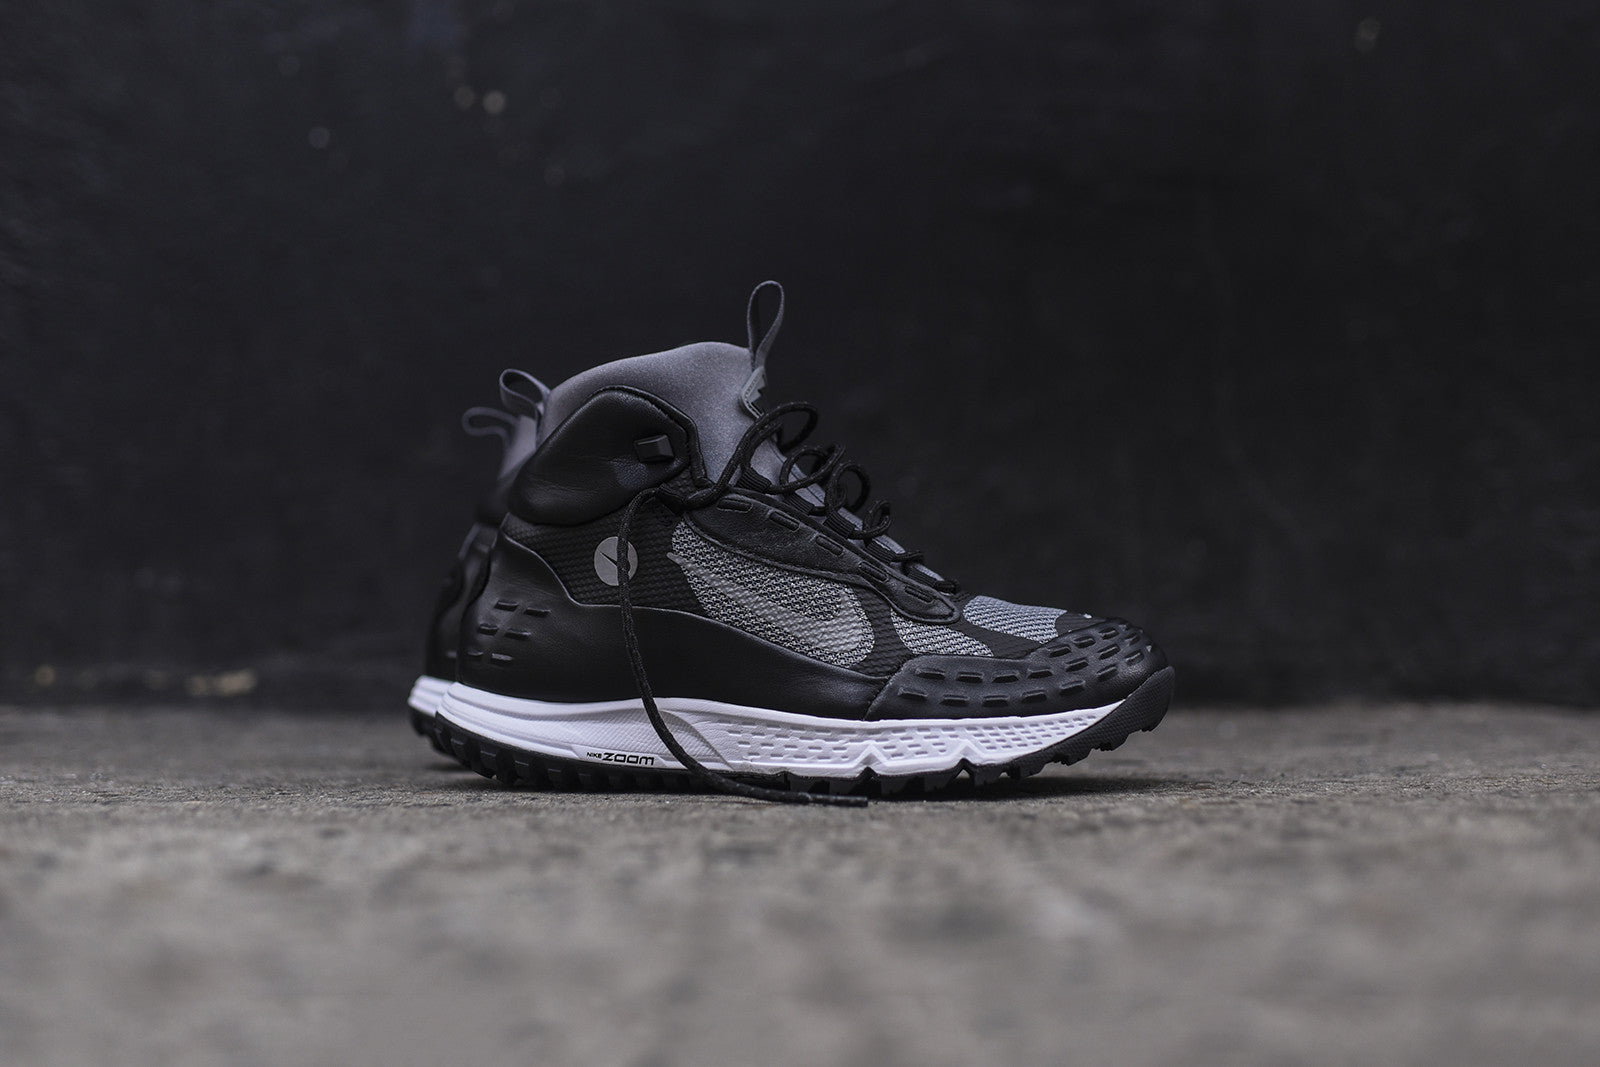 Nike Air Zoom Terra Sertig '16 - Black / Cool Grey